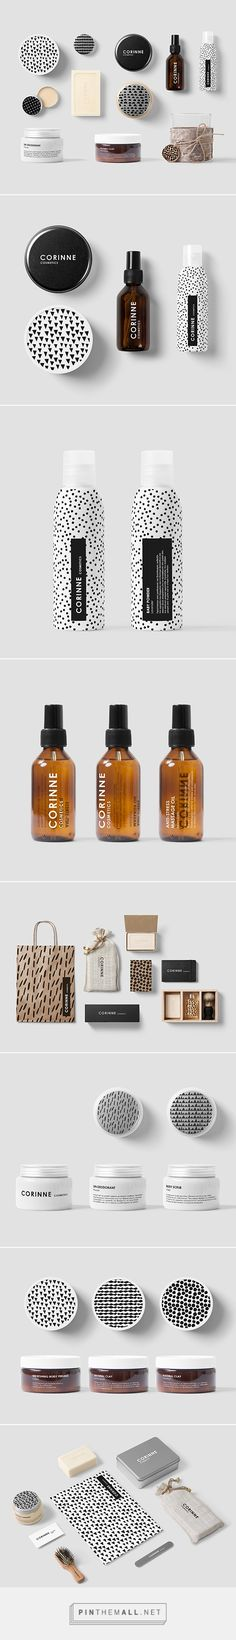 Corinne Designed by Anna Trympali Craft Packaging, Food Packaging Design, Soap Packaging, Branding Design, Skincare Packaging, Beauty Packaging, Cosmetic Packaging, Packaging Inspiration, Makeup Package